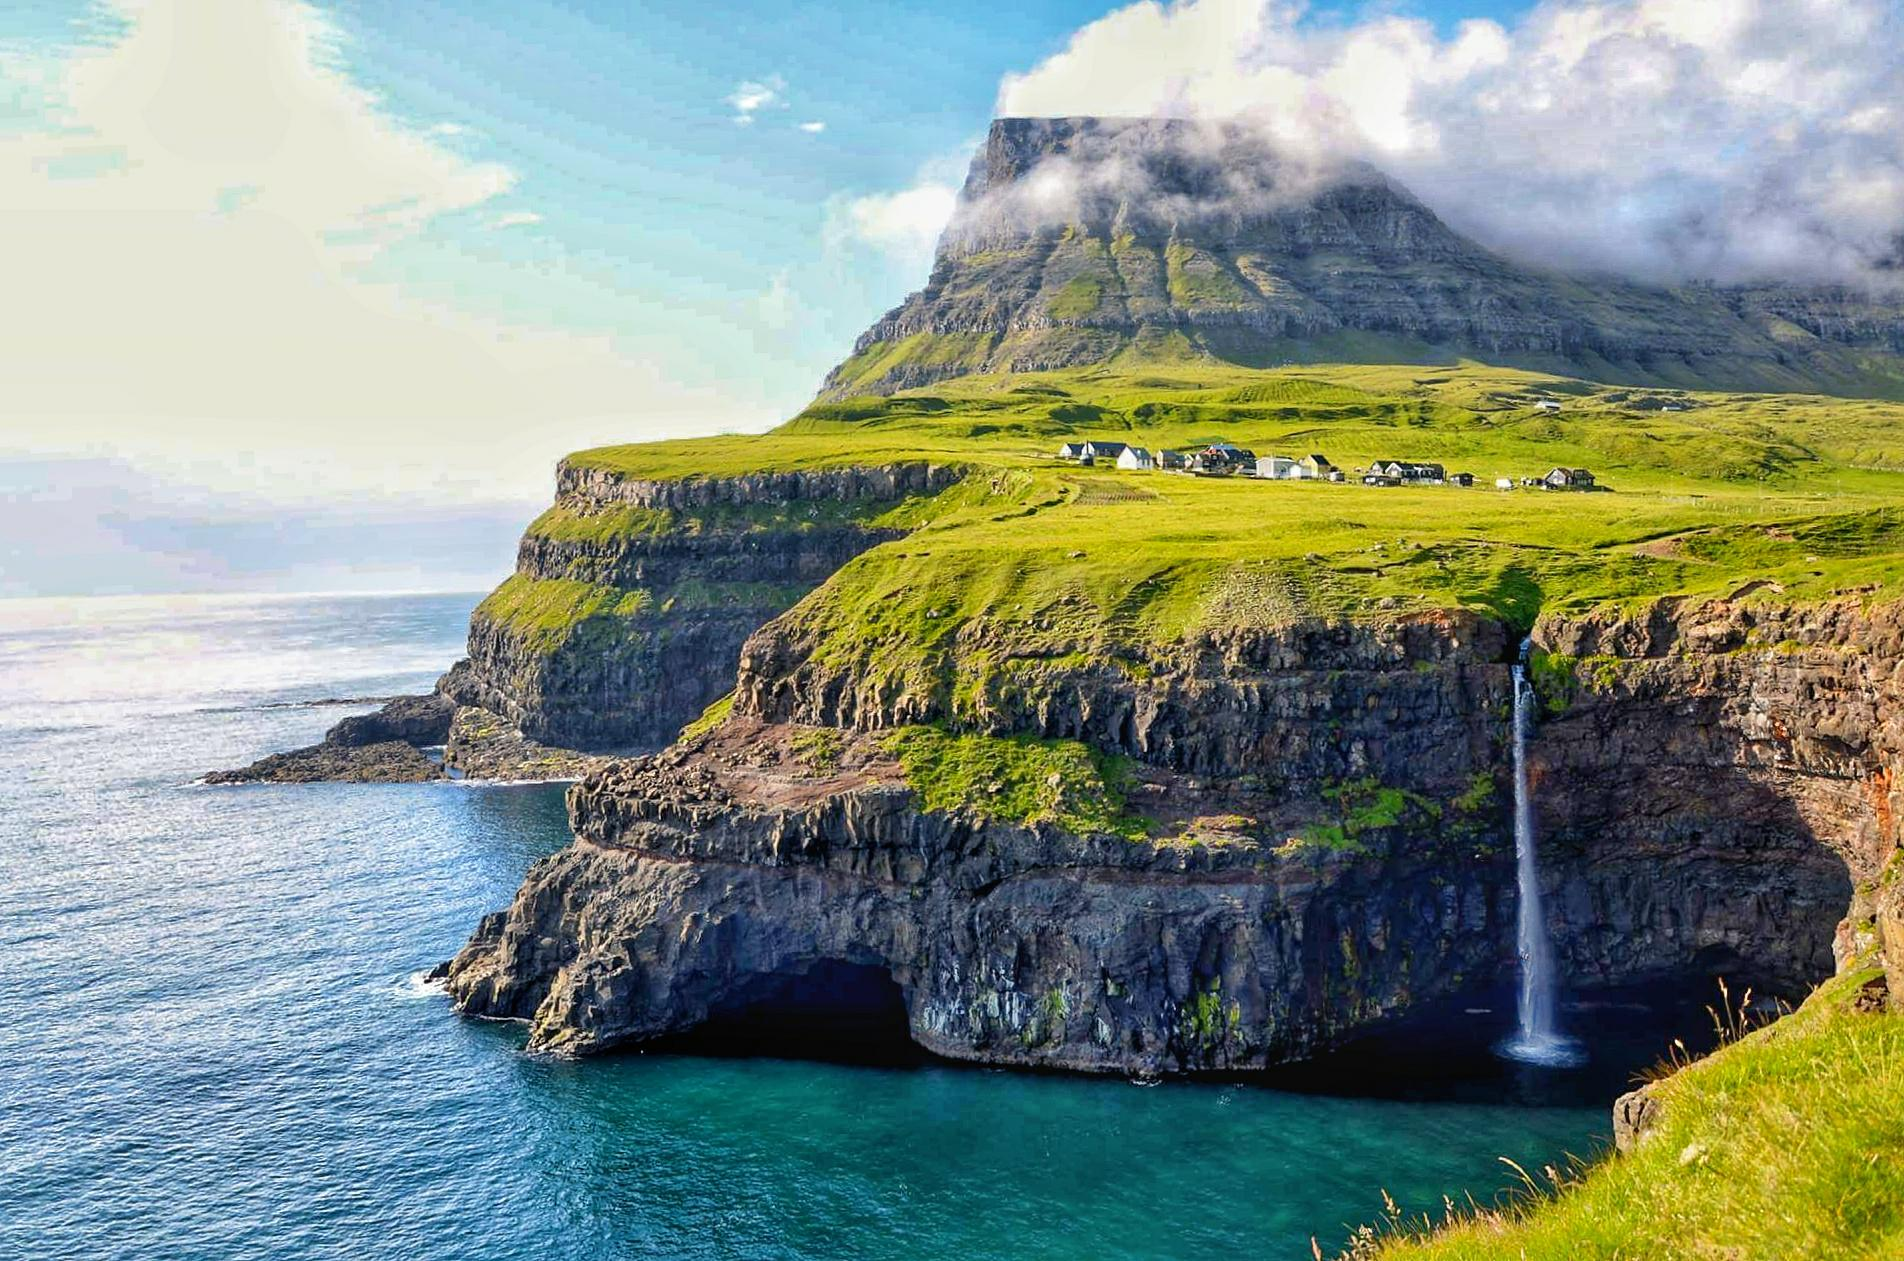 Gásadalur -a village located on the west side of Vágar, with stunning panoramic view over to the island of Mykines.